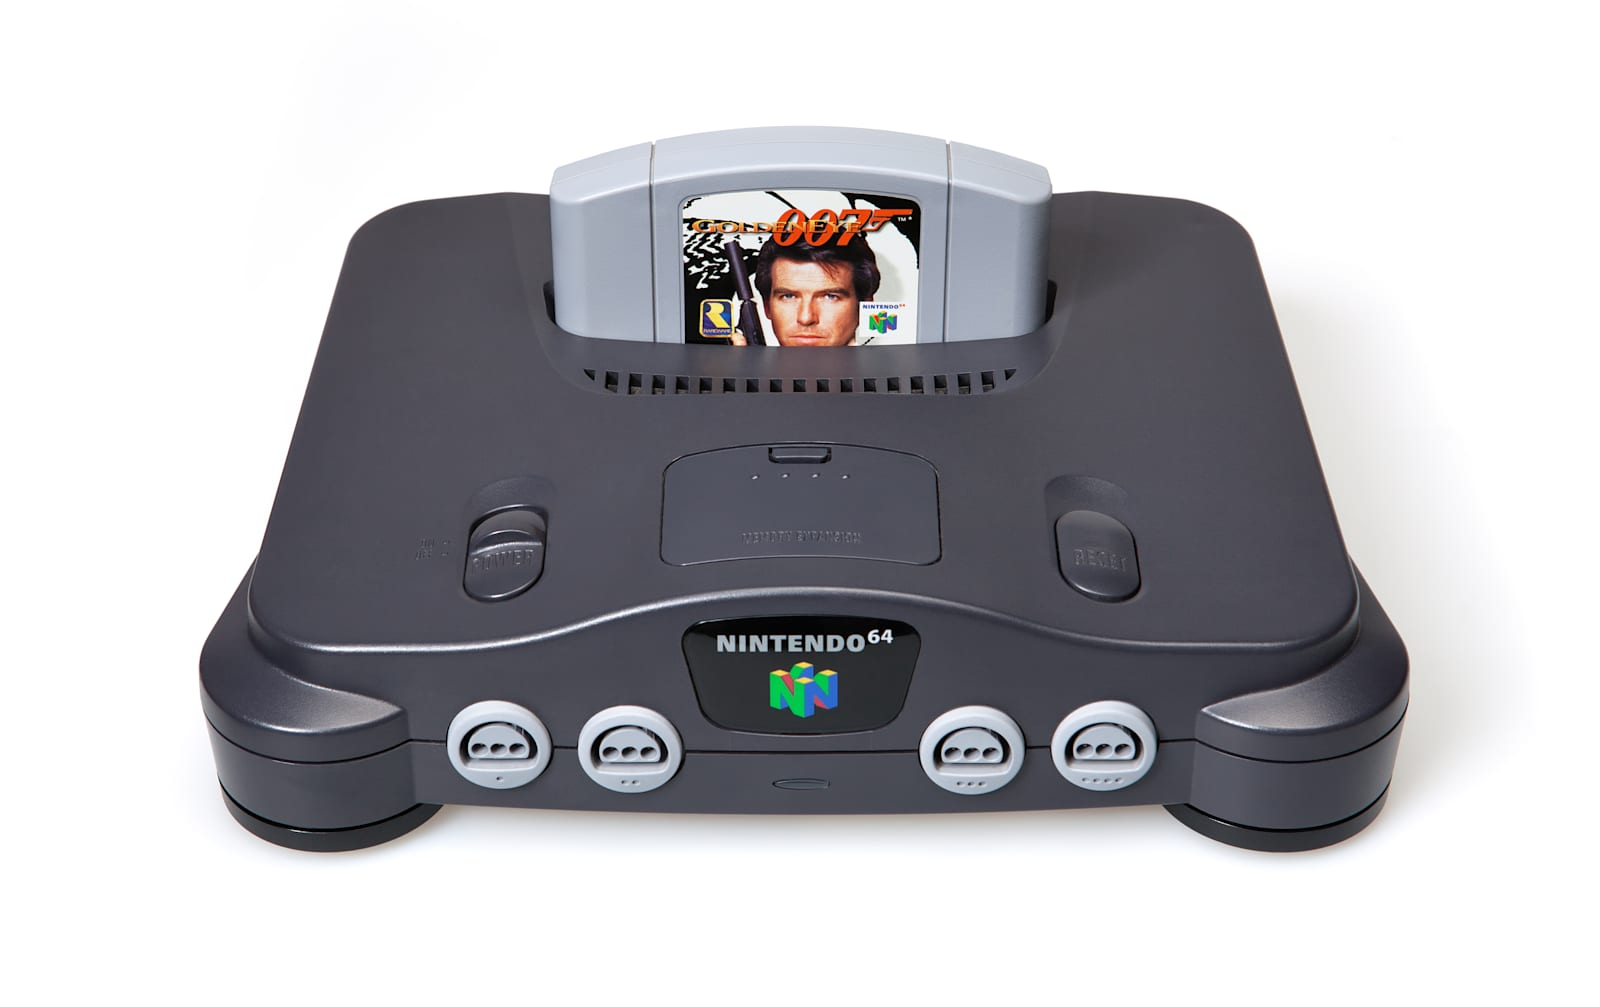 Nintendo N64 with Goldeneye 007 Game